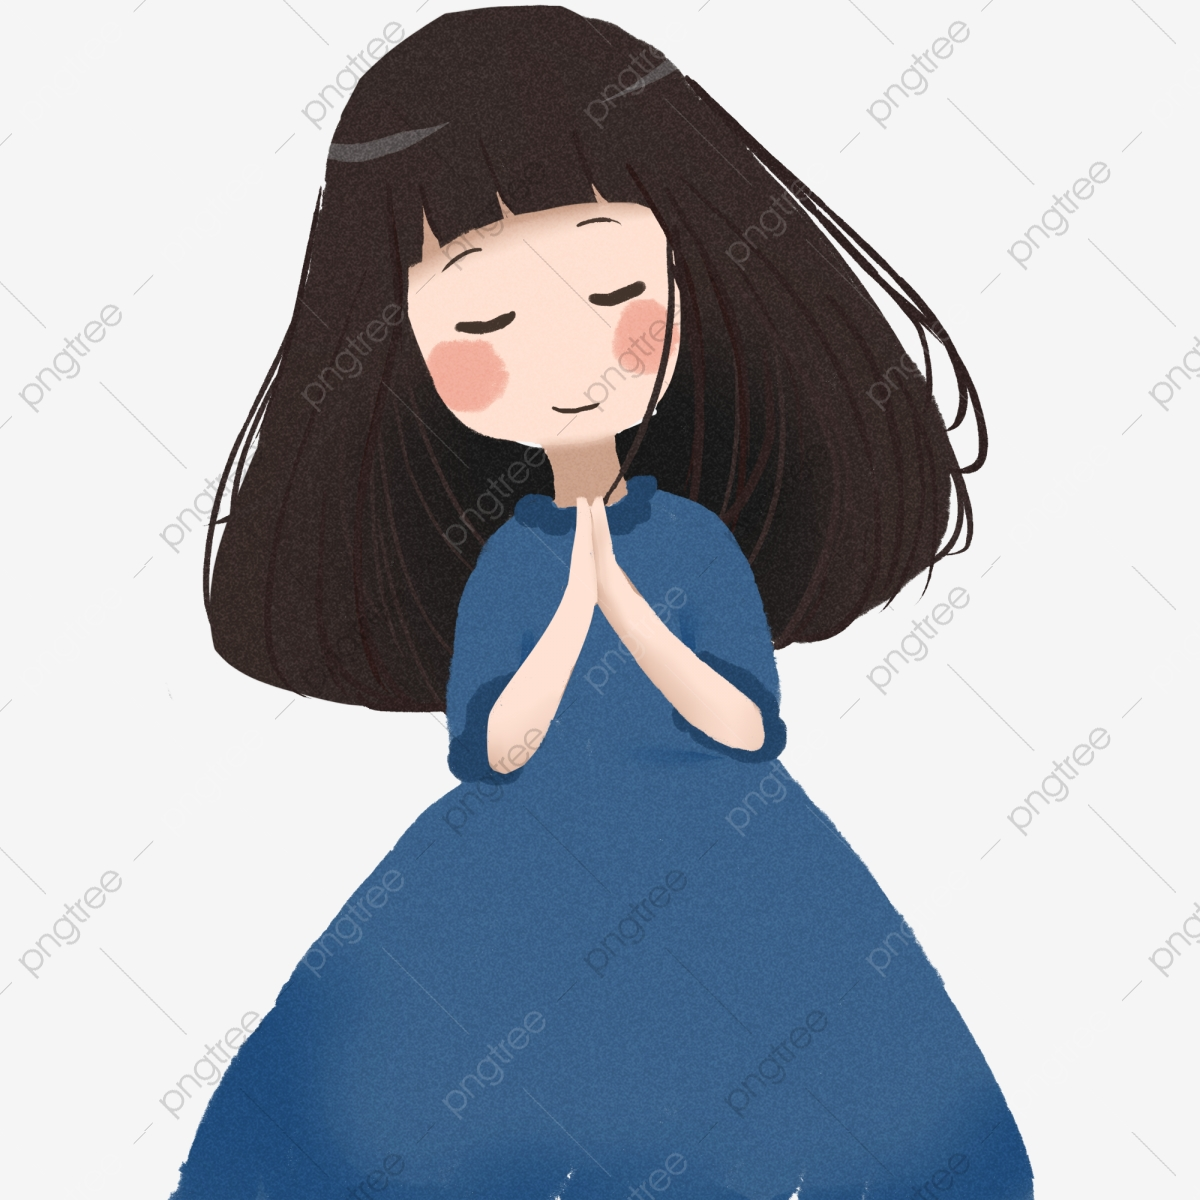 Praying Cute Girl Decorative Elements Long Hair Beautiful Teenage Girl Png Transparent Clipart Image And Psd File For Free Download